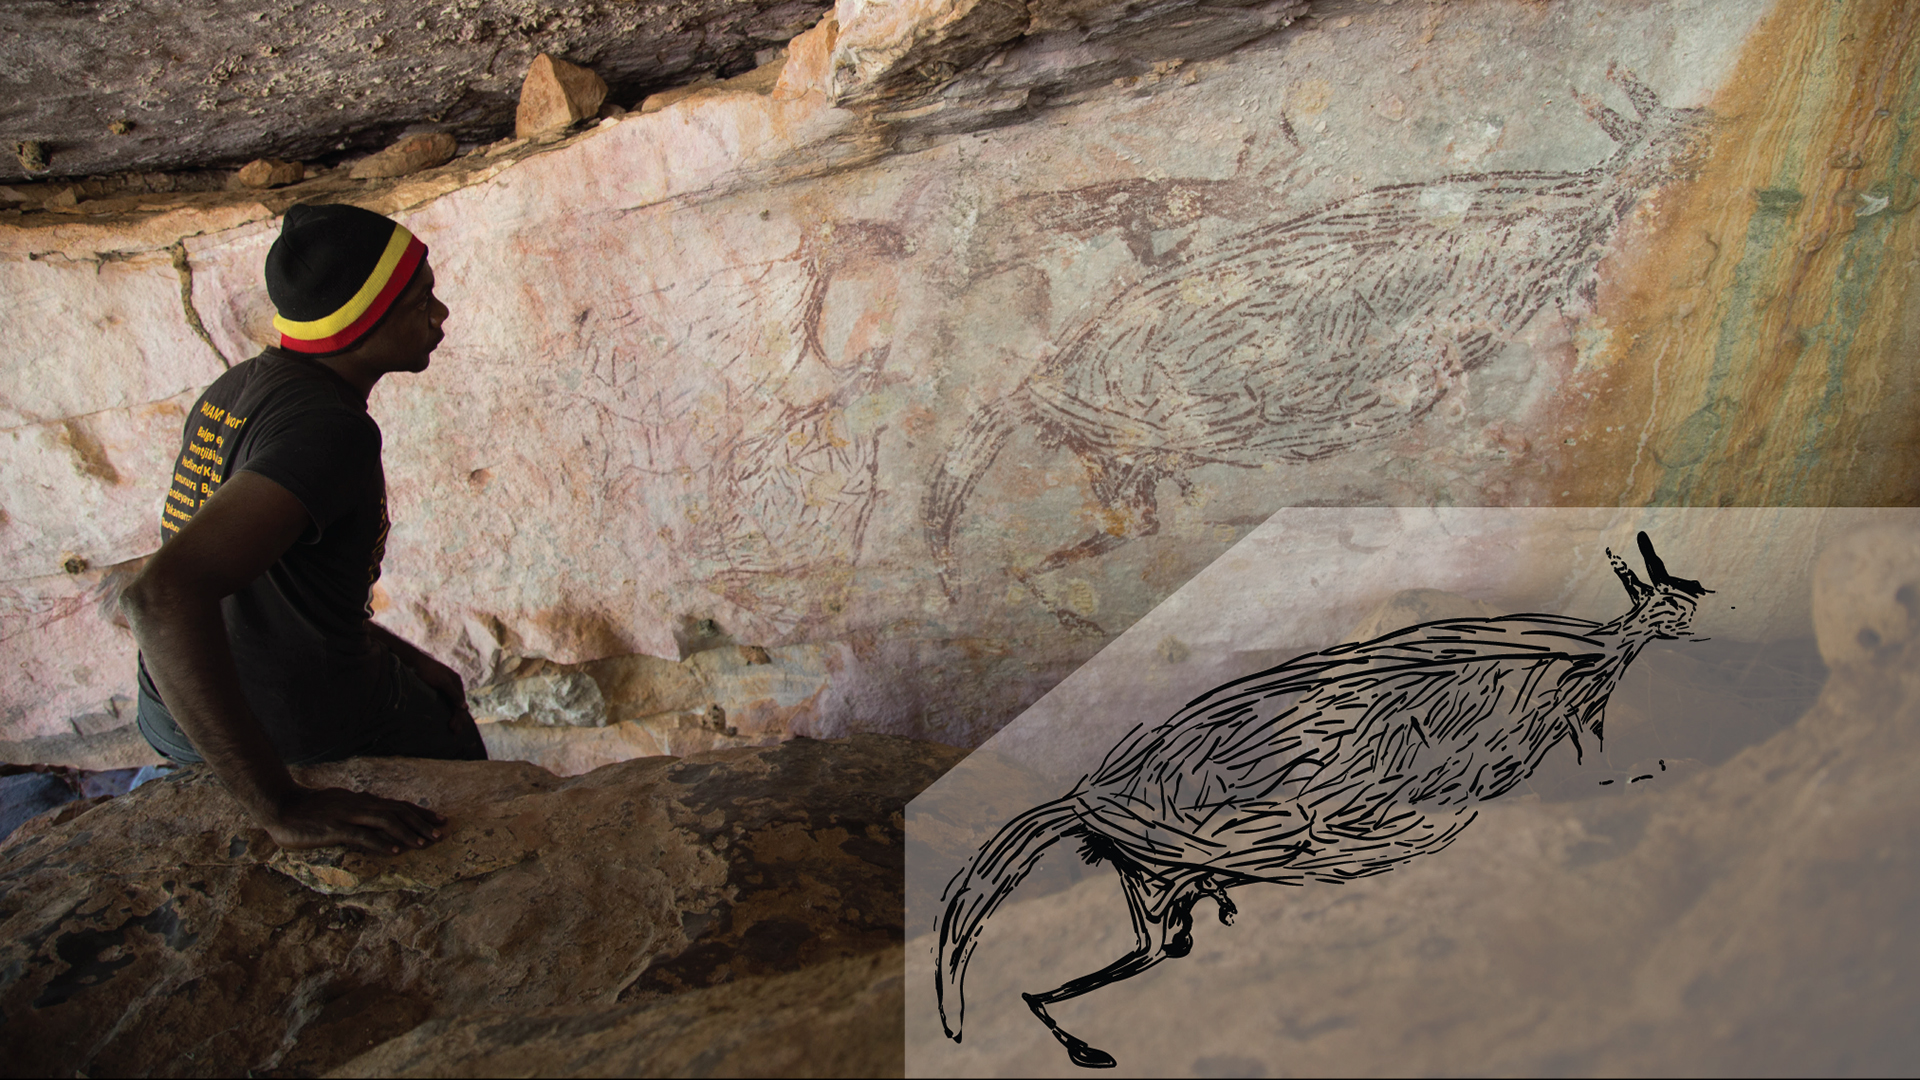 Traditional owner Ian Waina inspects a painting of a kangaroo that is more than 12,700 years old, based on the age of overlying mud wasp nests. Inset: an illustration of the rock painting just above it.